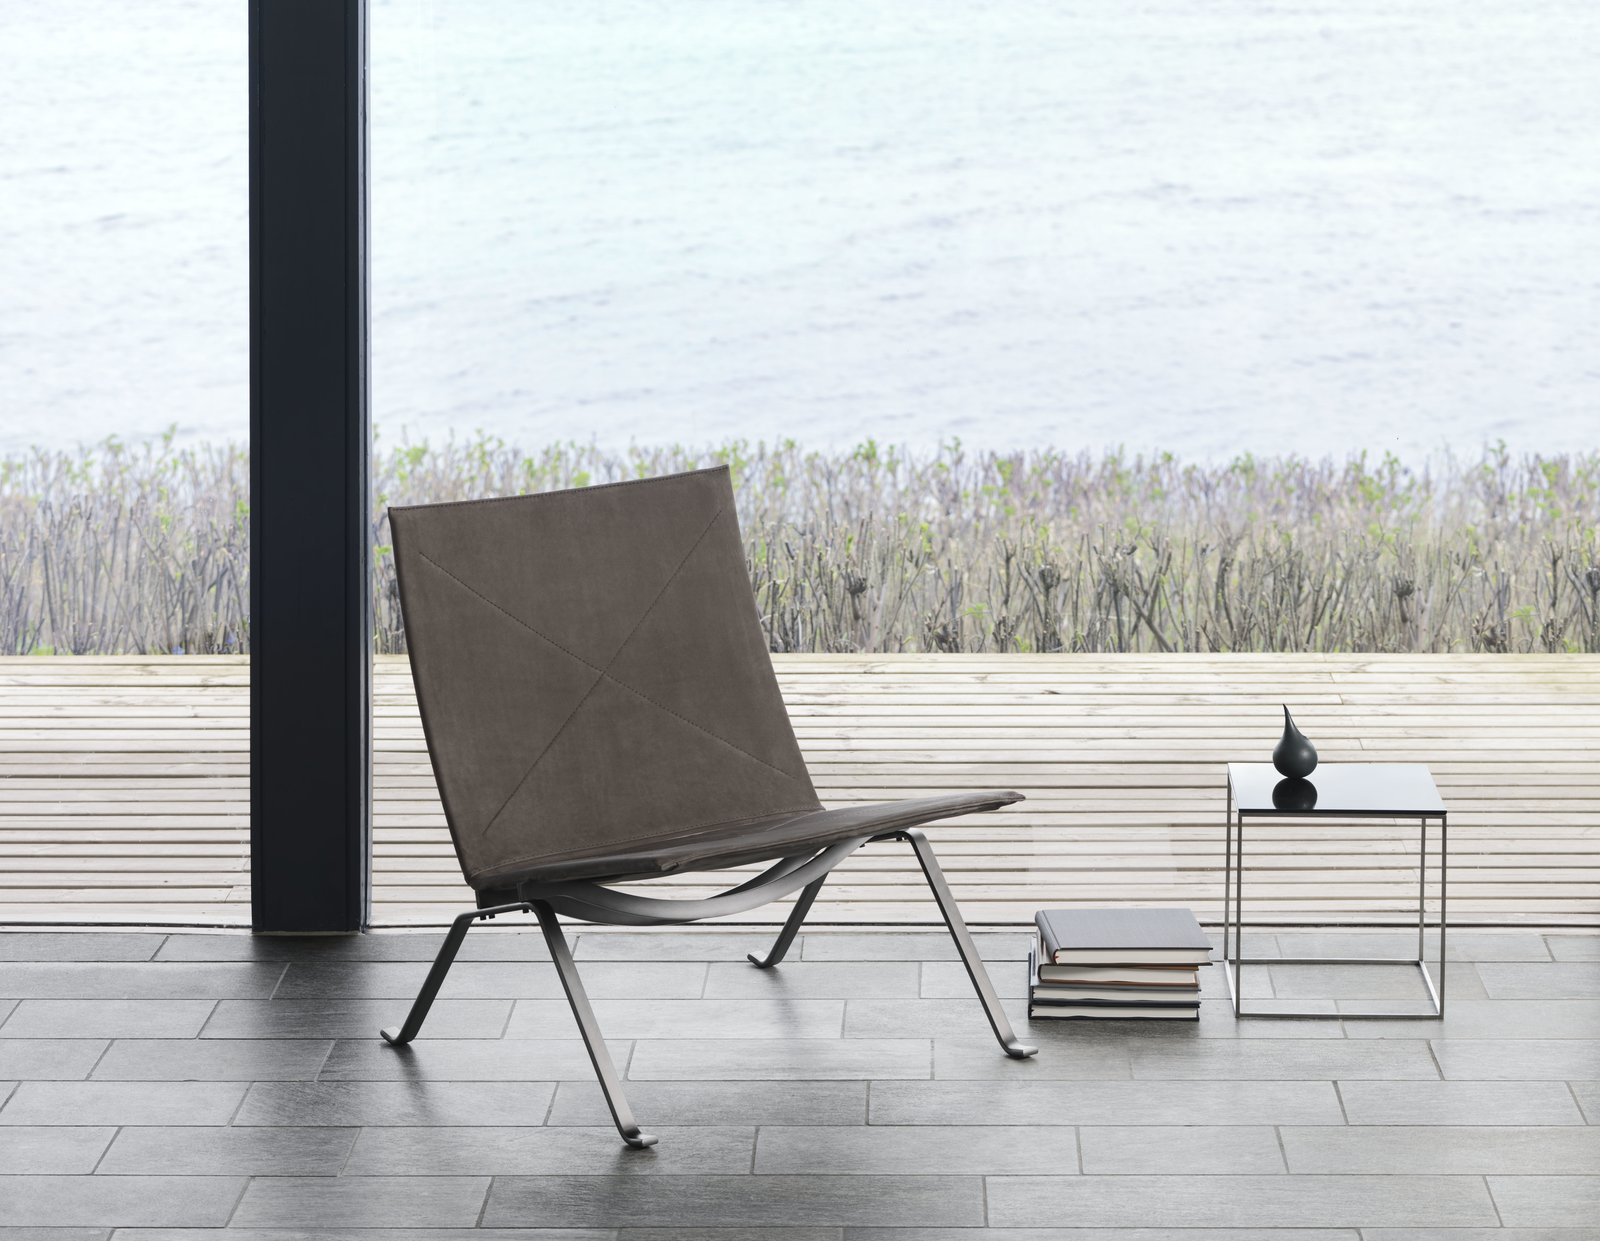 As an evolution from the PK25, the PK22 is less sculptural and more refined. The chair made its first appearance in 1956. Instead of being made from one piece of steel, the construction allows the chair to be broken down, which makes it easier to ship. In making sure that every aspect of the design counted, even the screws have aesthetic appeal. For the anniversary, the steel frame is darkened and finished in a nubuck leather.  Photo 6 of 11 in 10 Things You Didn't Know About Poul Kjærholm